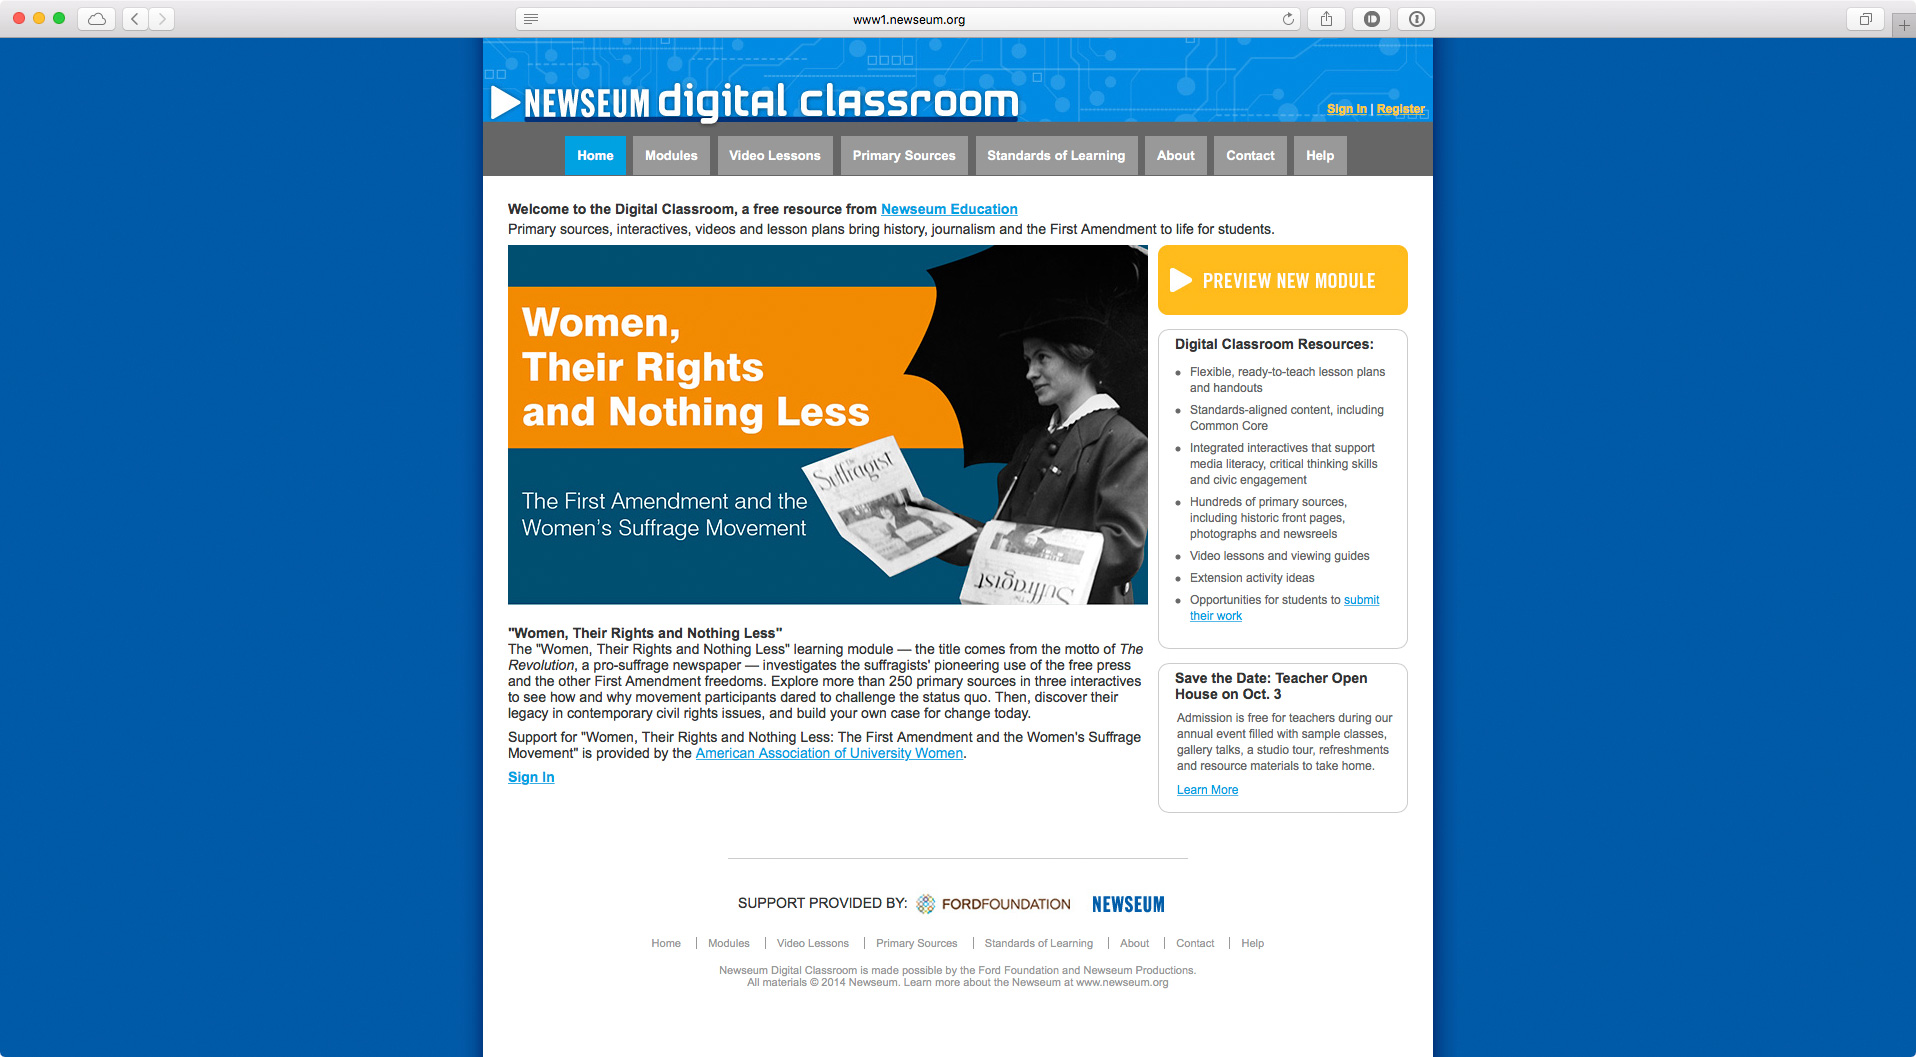 A screenshot of the Digital Classroom prior to the redesign.